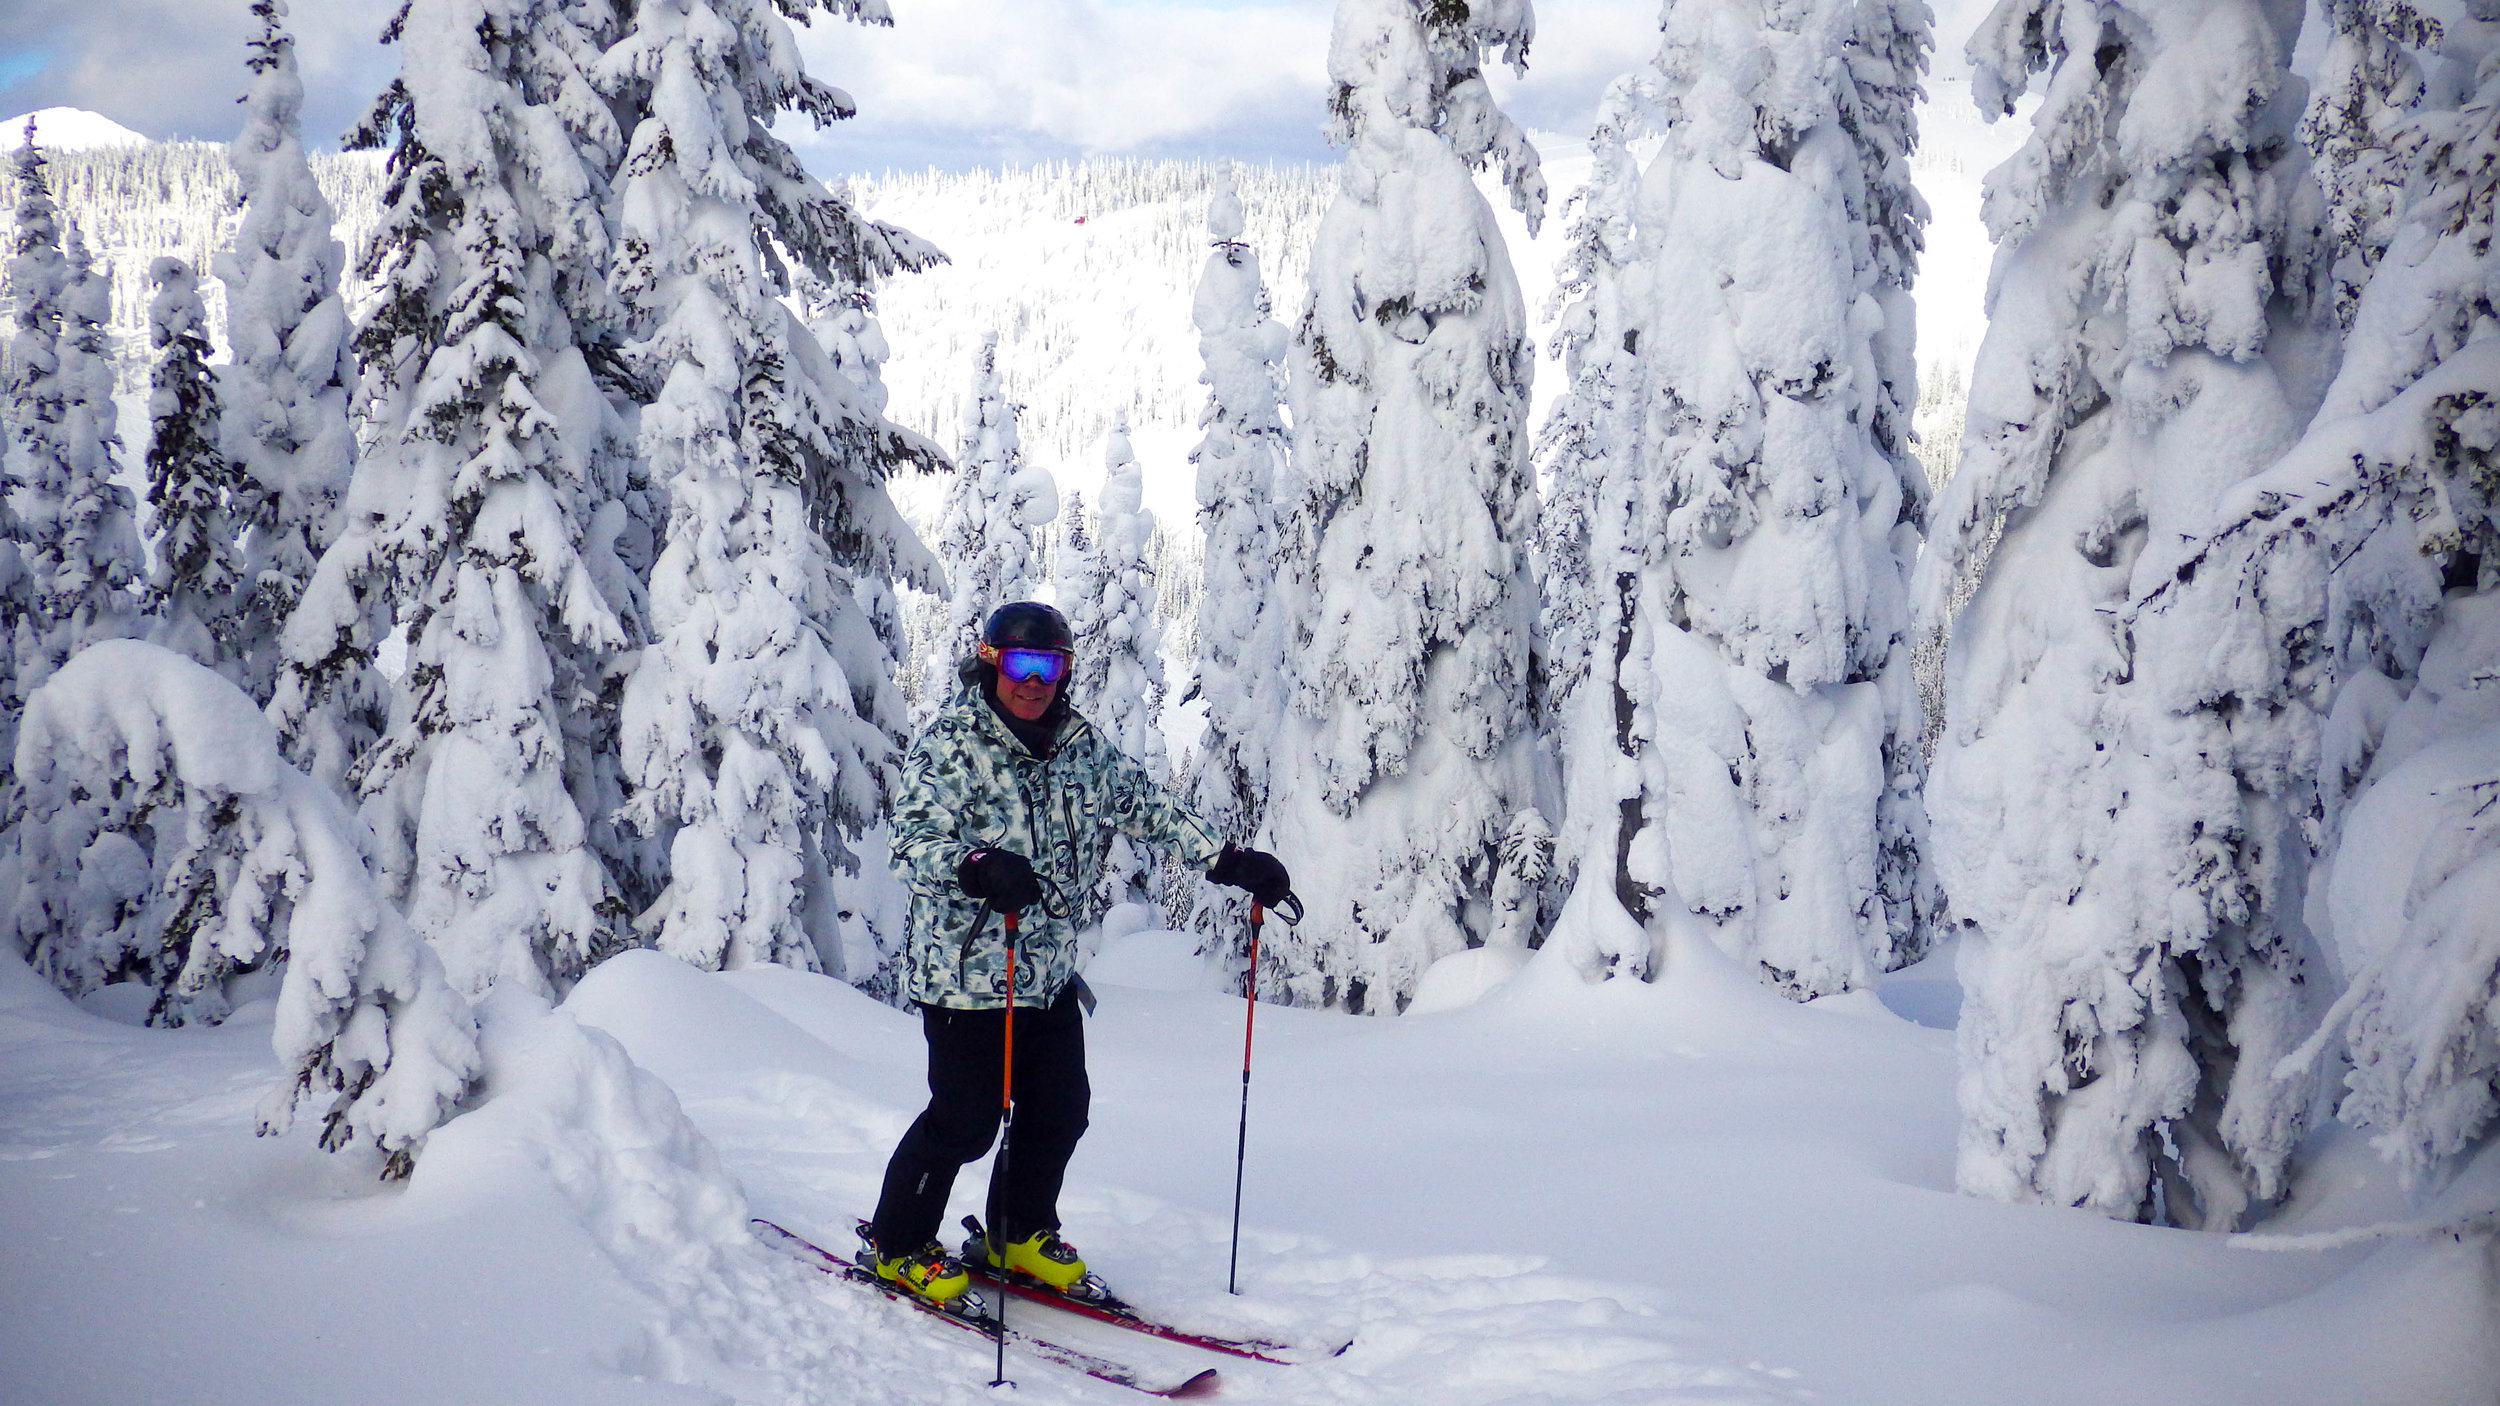 Brad among the snow covered trees of Big White